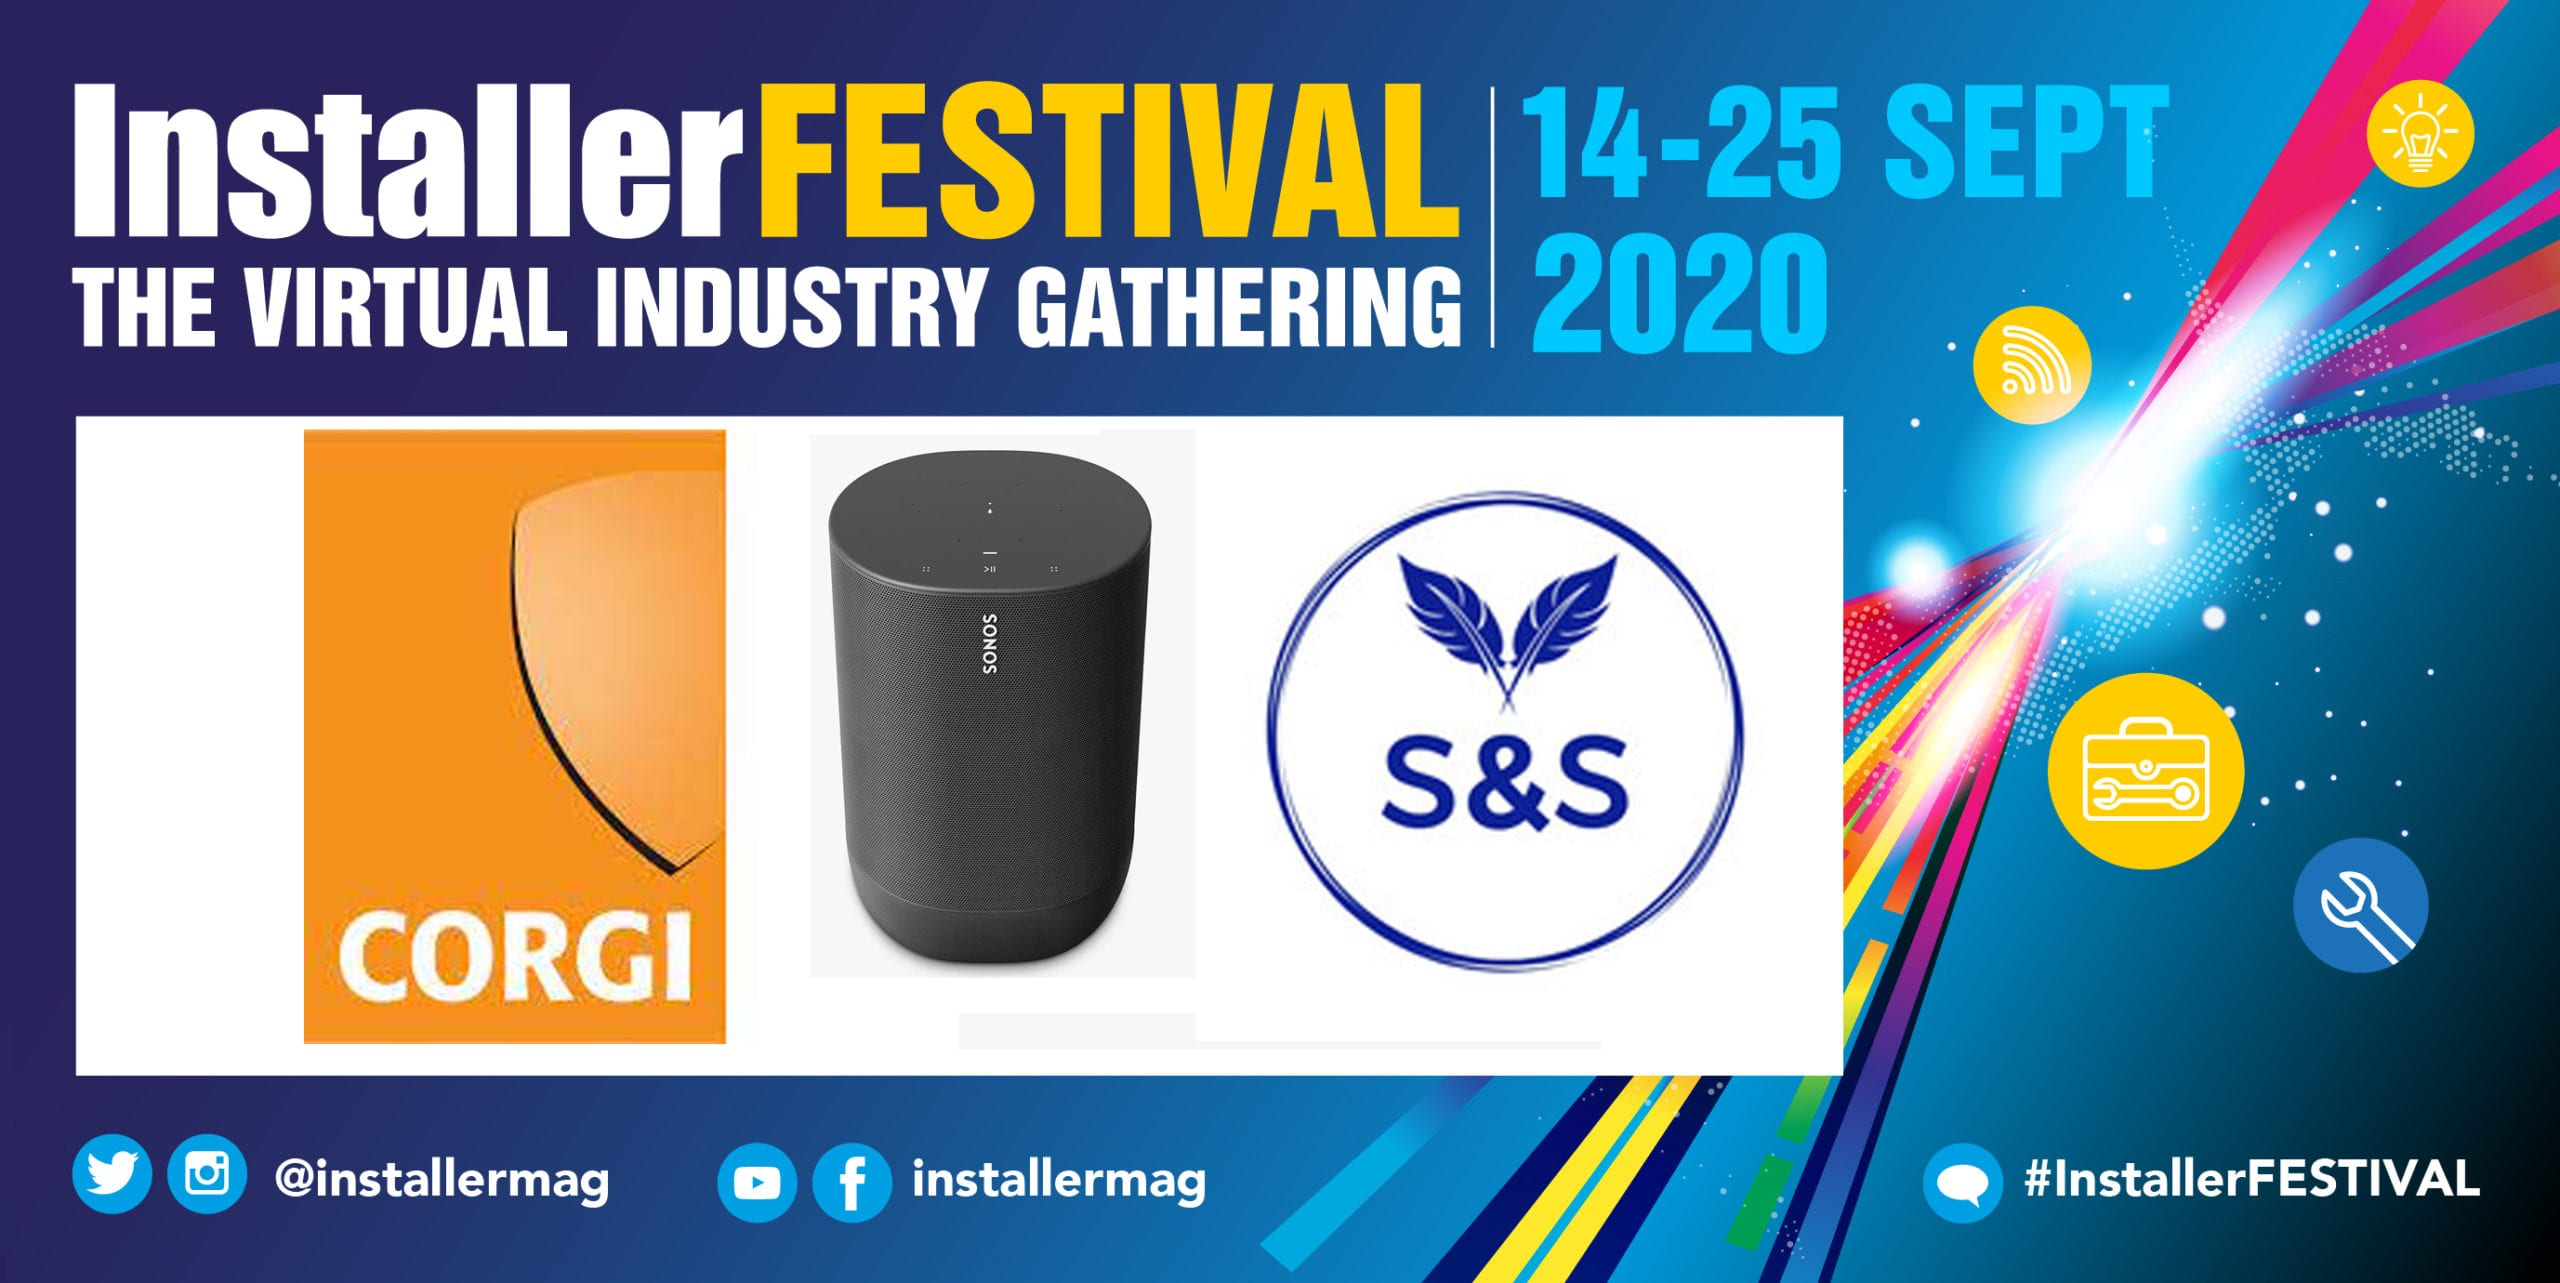 Popular - Win a smart speaker with CORGI Services at InstallerFESTIVAL